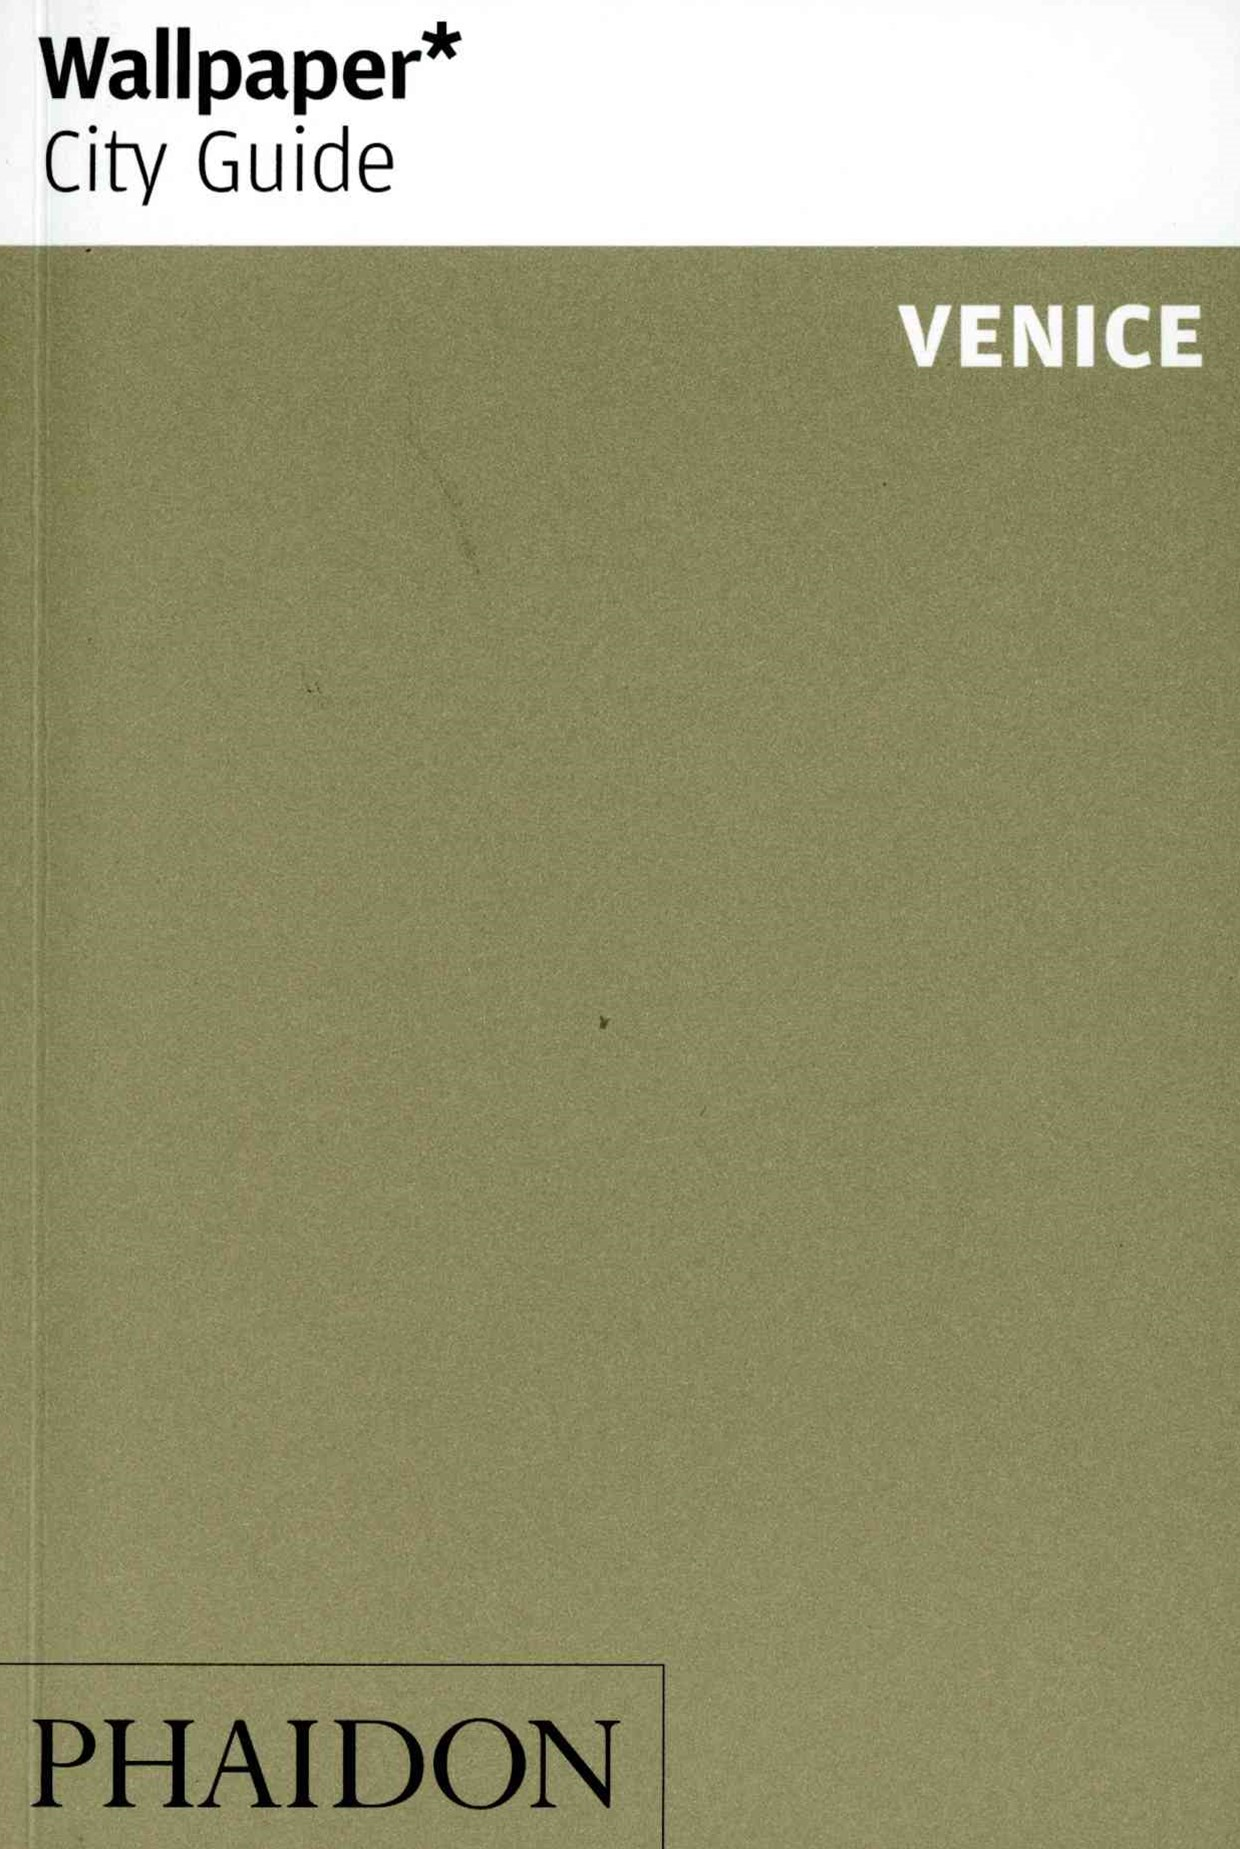 Wallpaper* City Guide Venice 2015